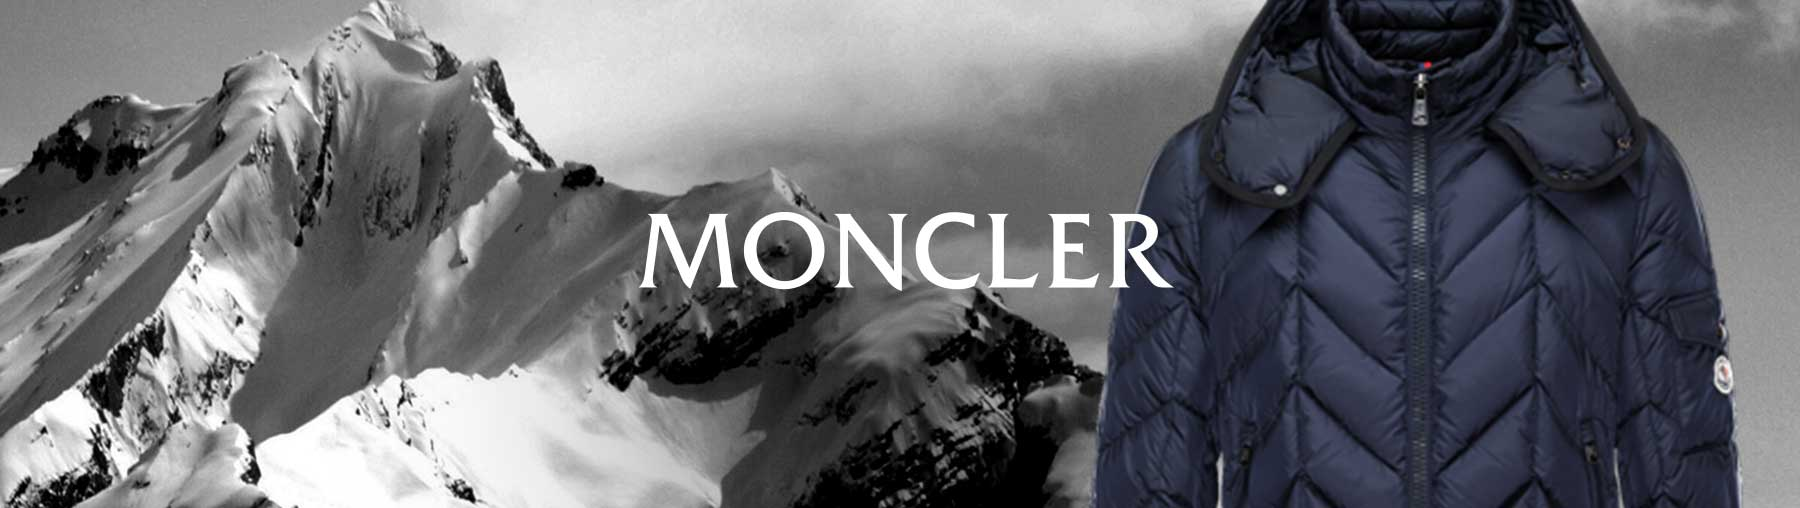 c8c0842318cc Moncler Men s Clothing   Coats   Shirts at Bergdorf Goodman